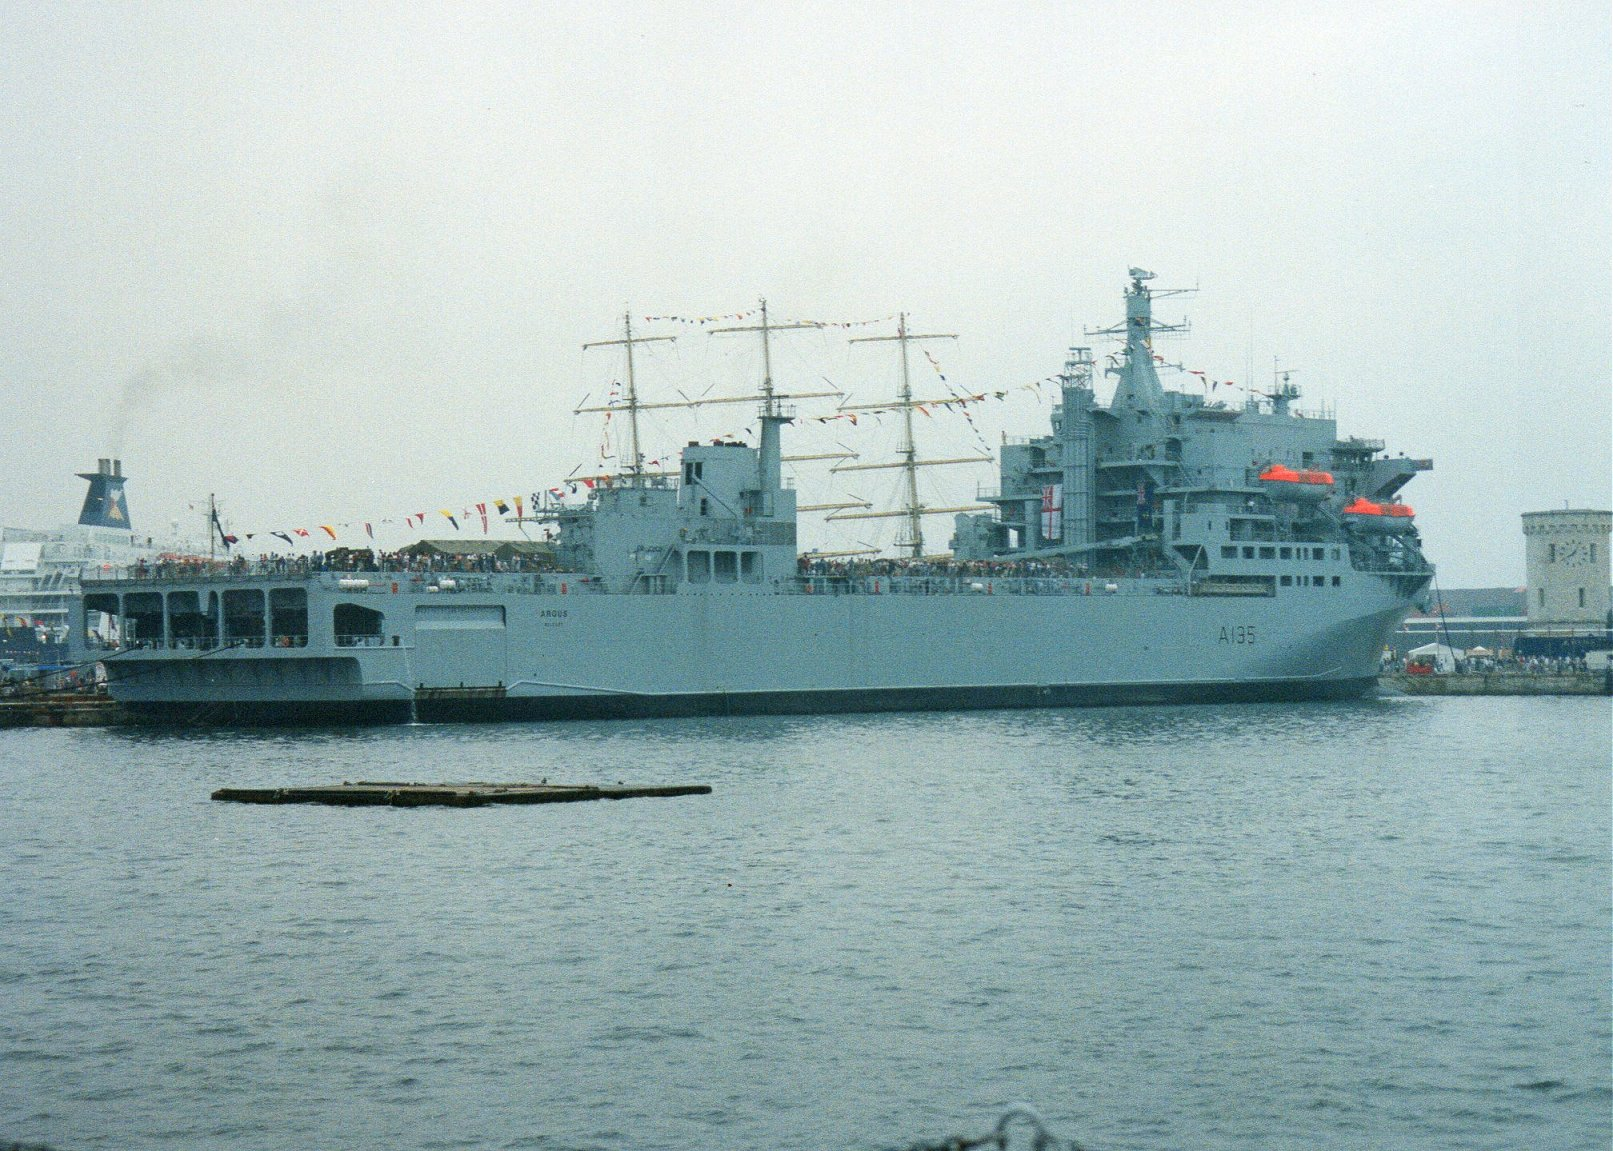 RFA Argus, primary casualty reception ship, Portsmouth 2001.